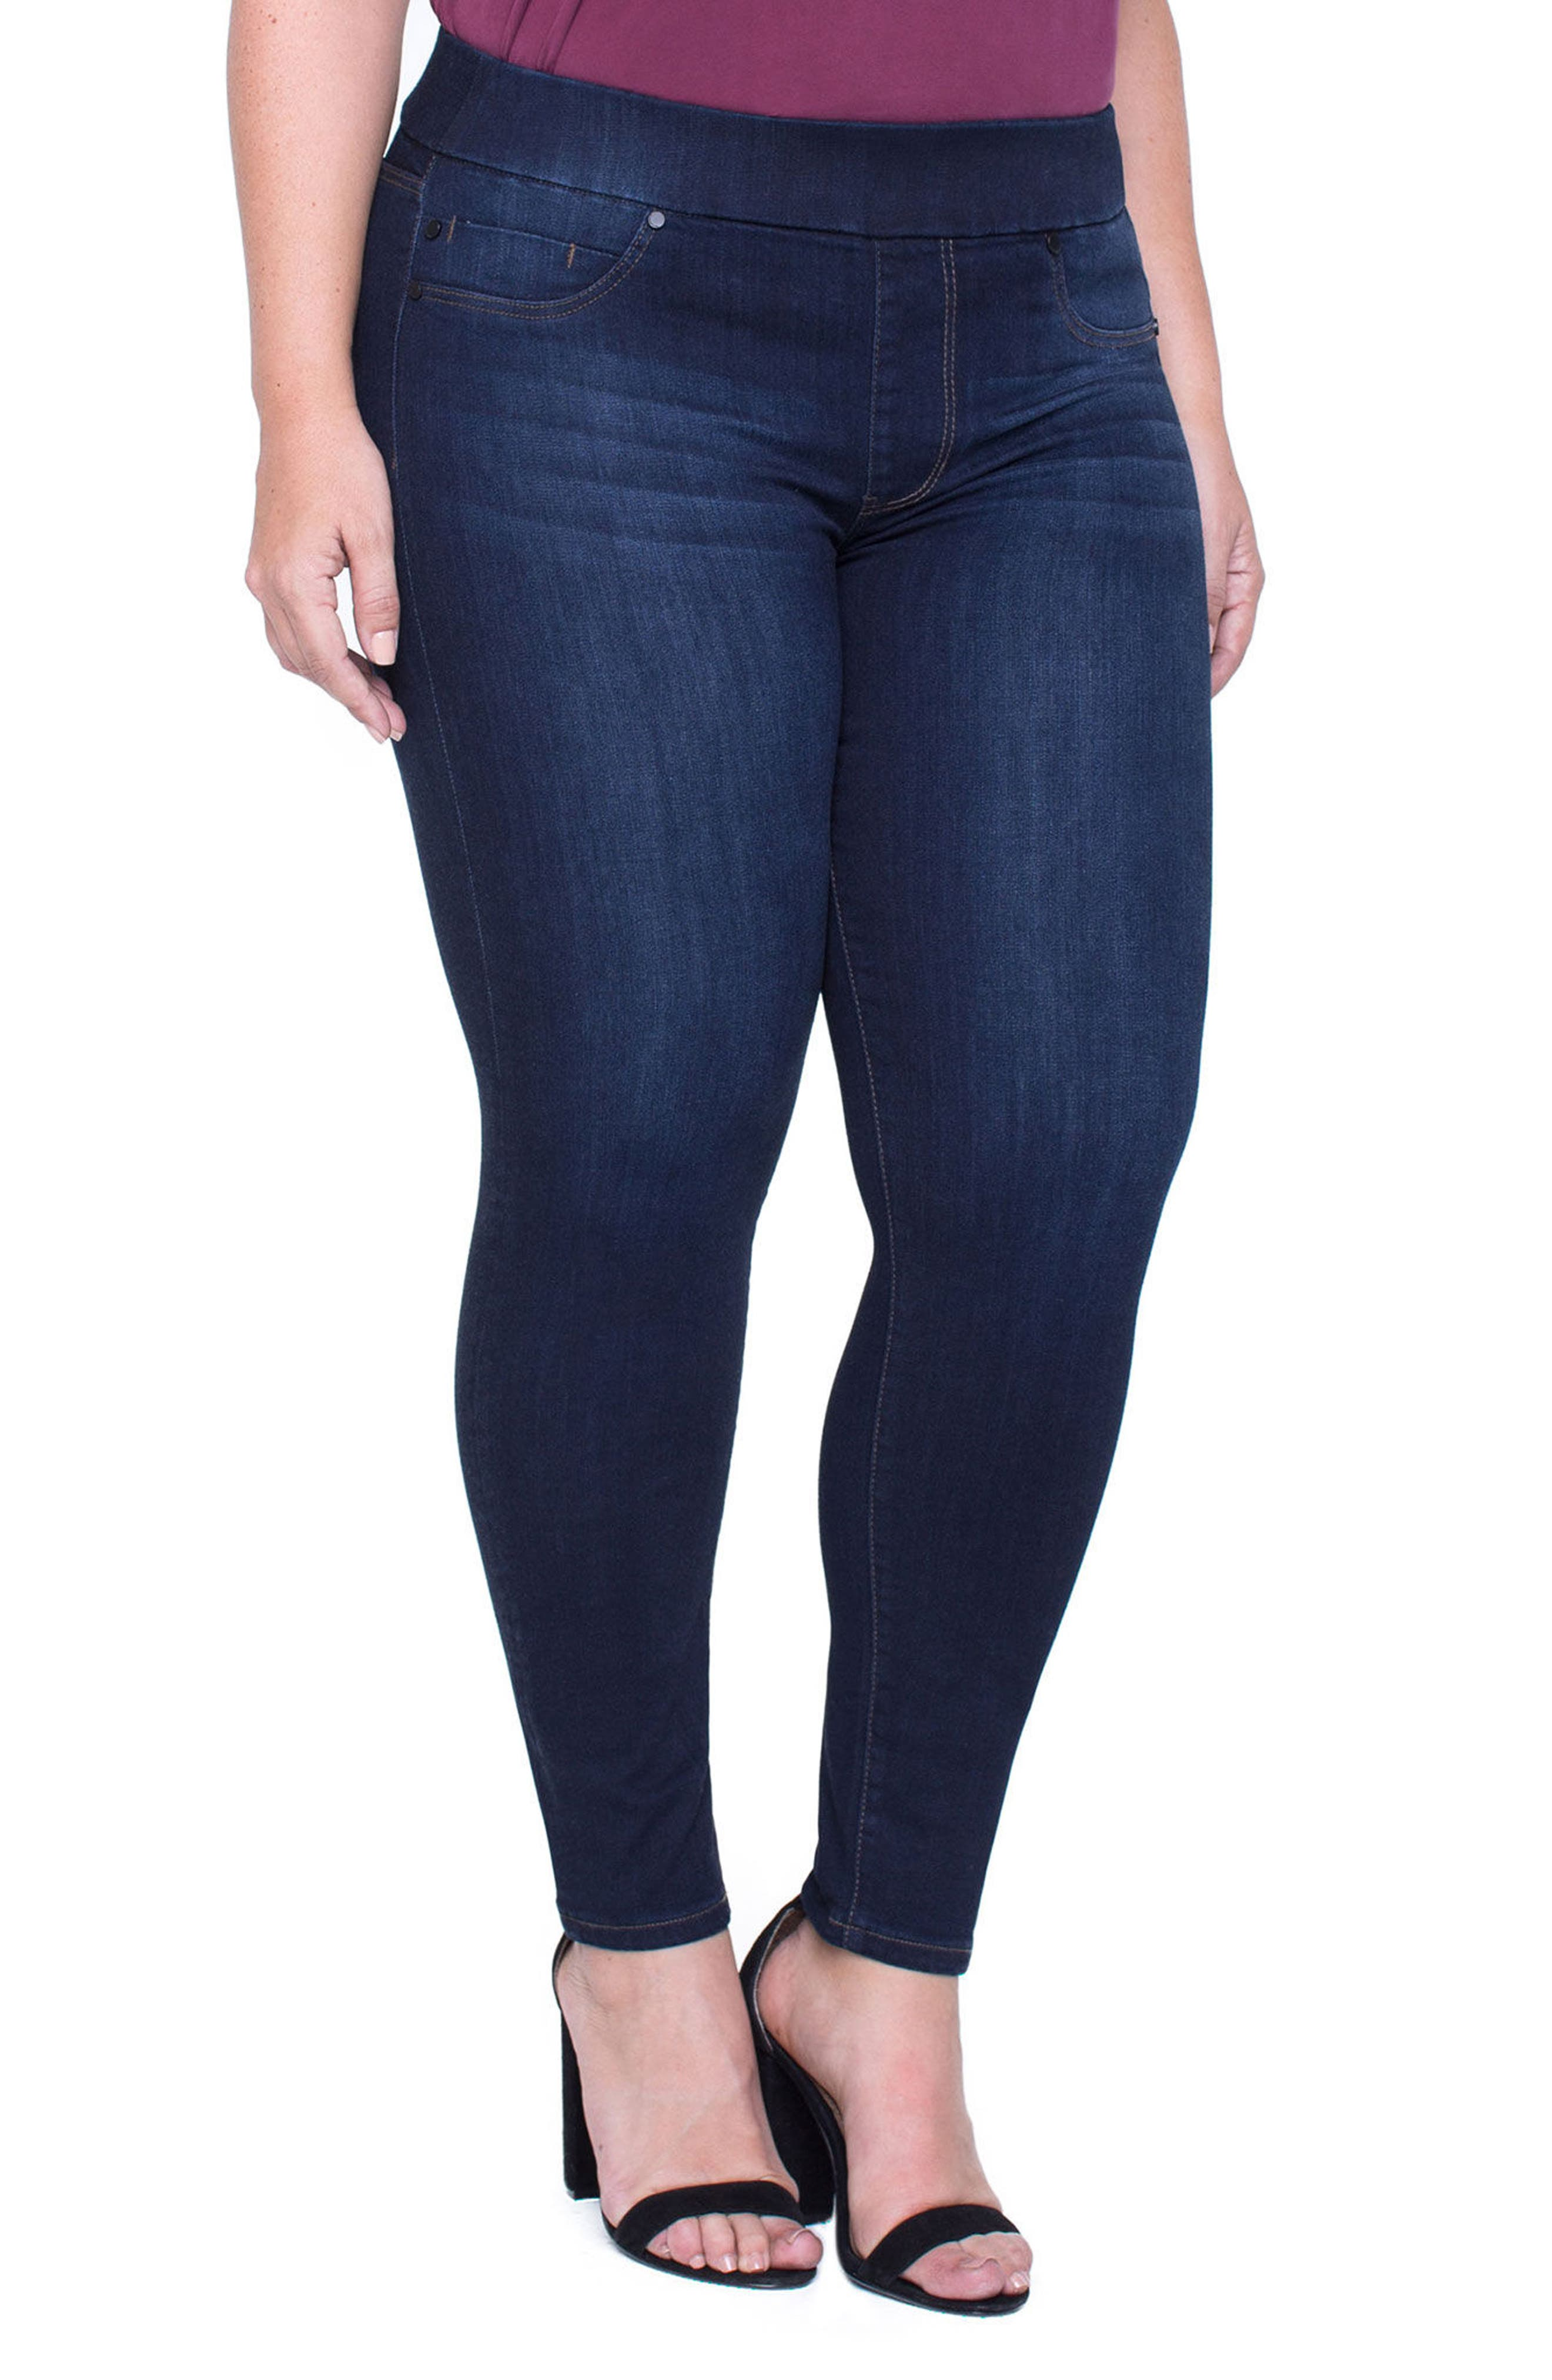 Main Image - Liverpool Jeans Company Sienna Pull-On Stretch Ankle Jeans (Plus Size)